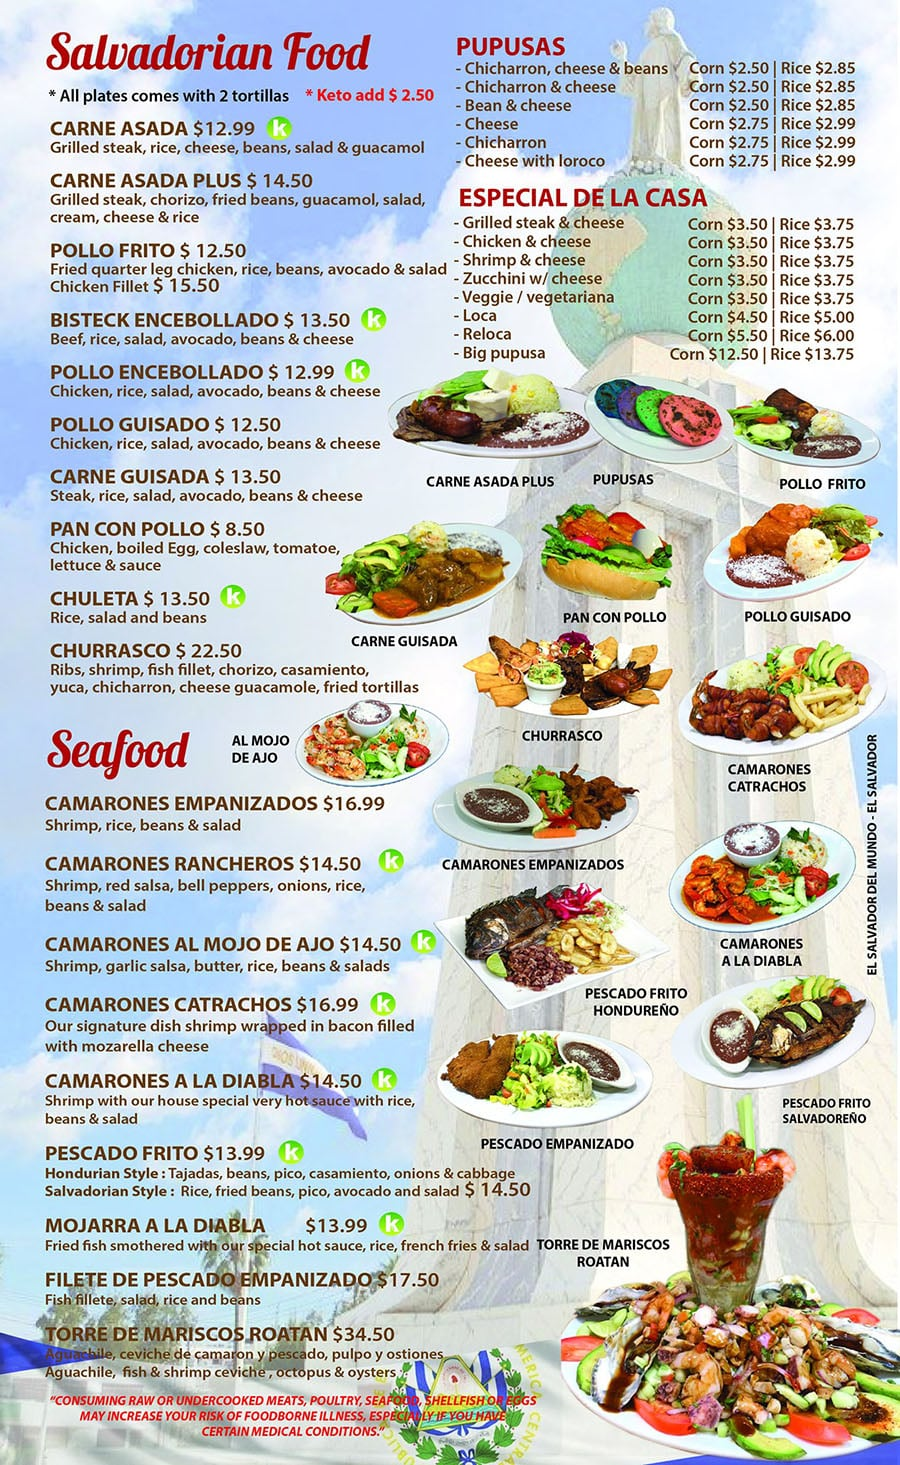 Catrachos Restaurant menu - Salvadorian food, searfood